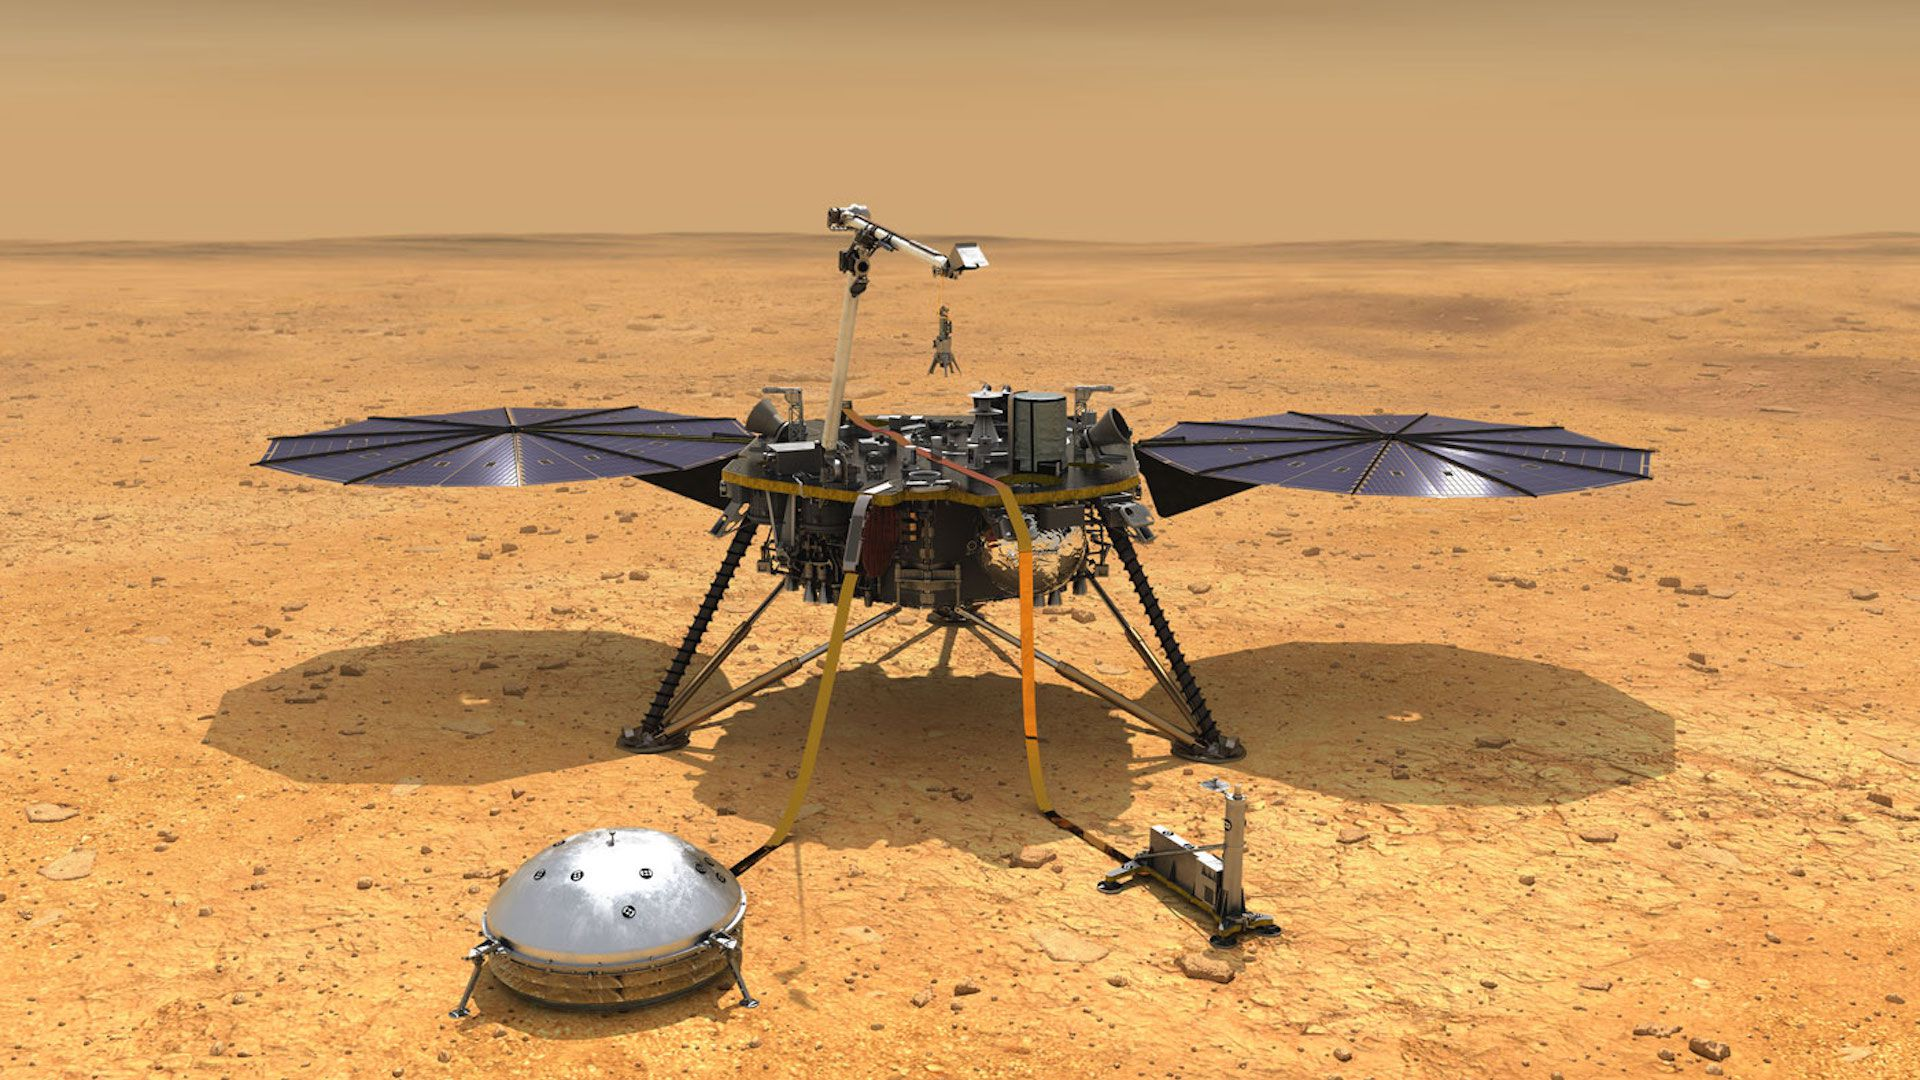 The Mars InSight lander as depicted in an illustration with its instruments deployed on the surface of Mars.